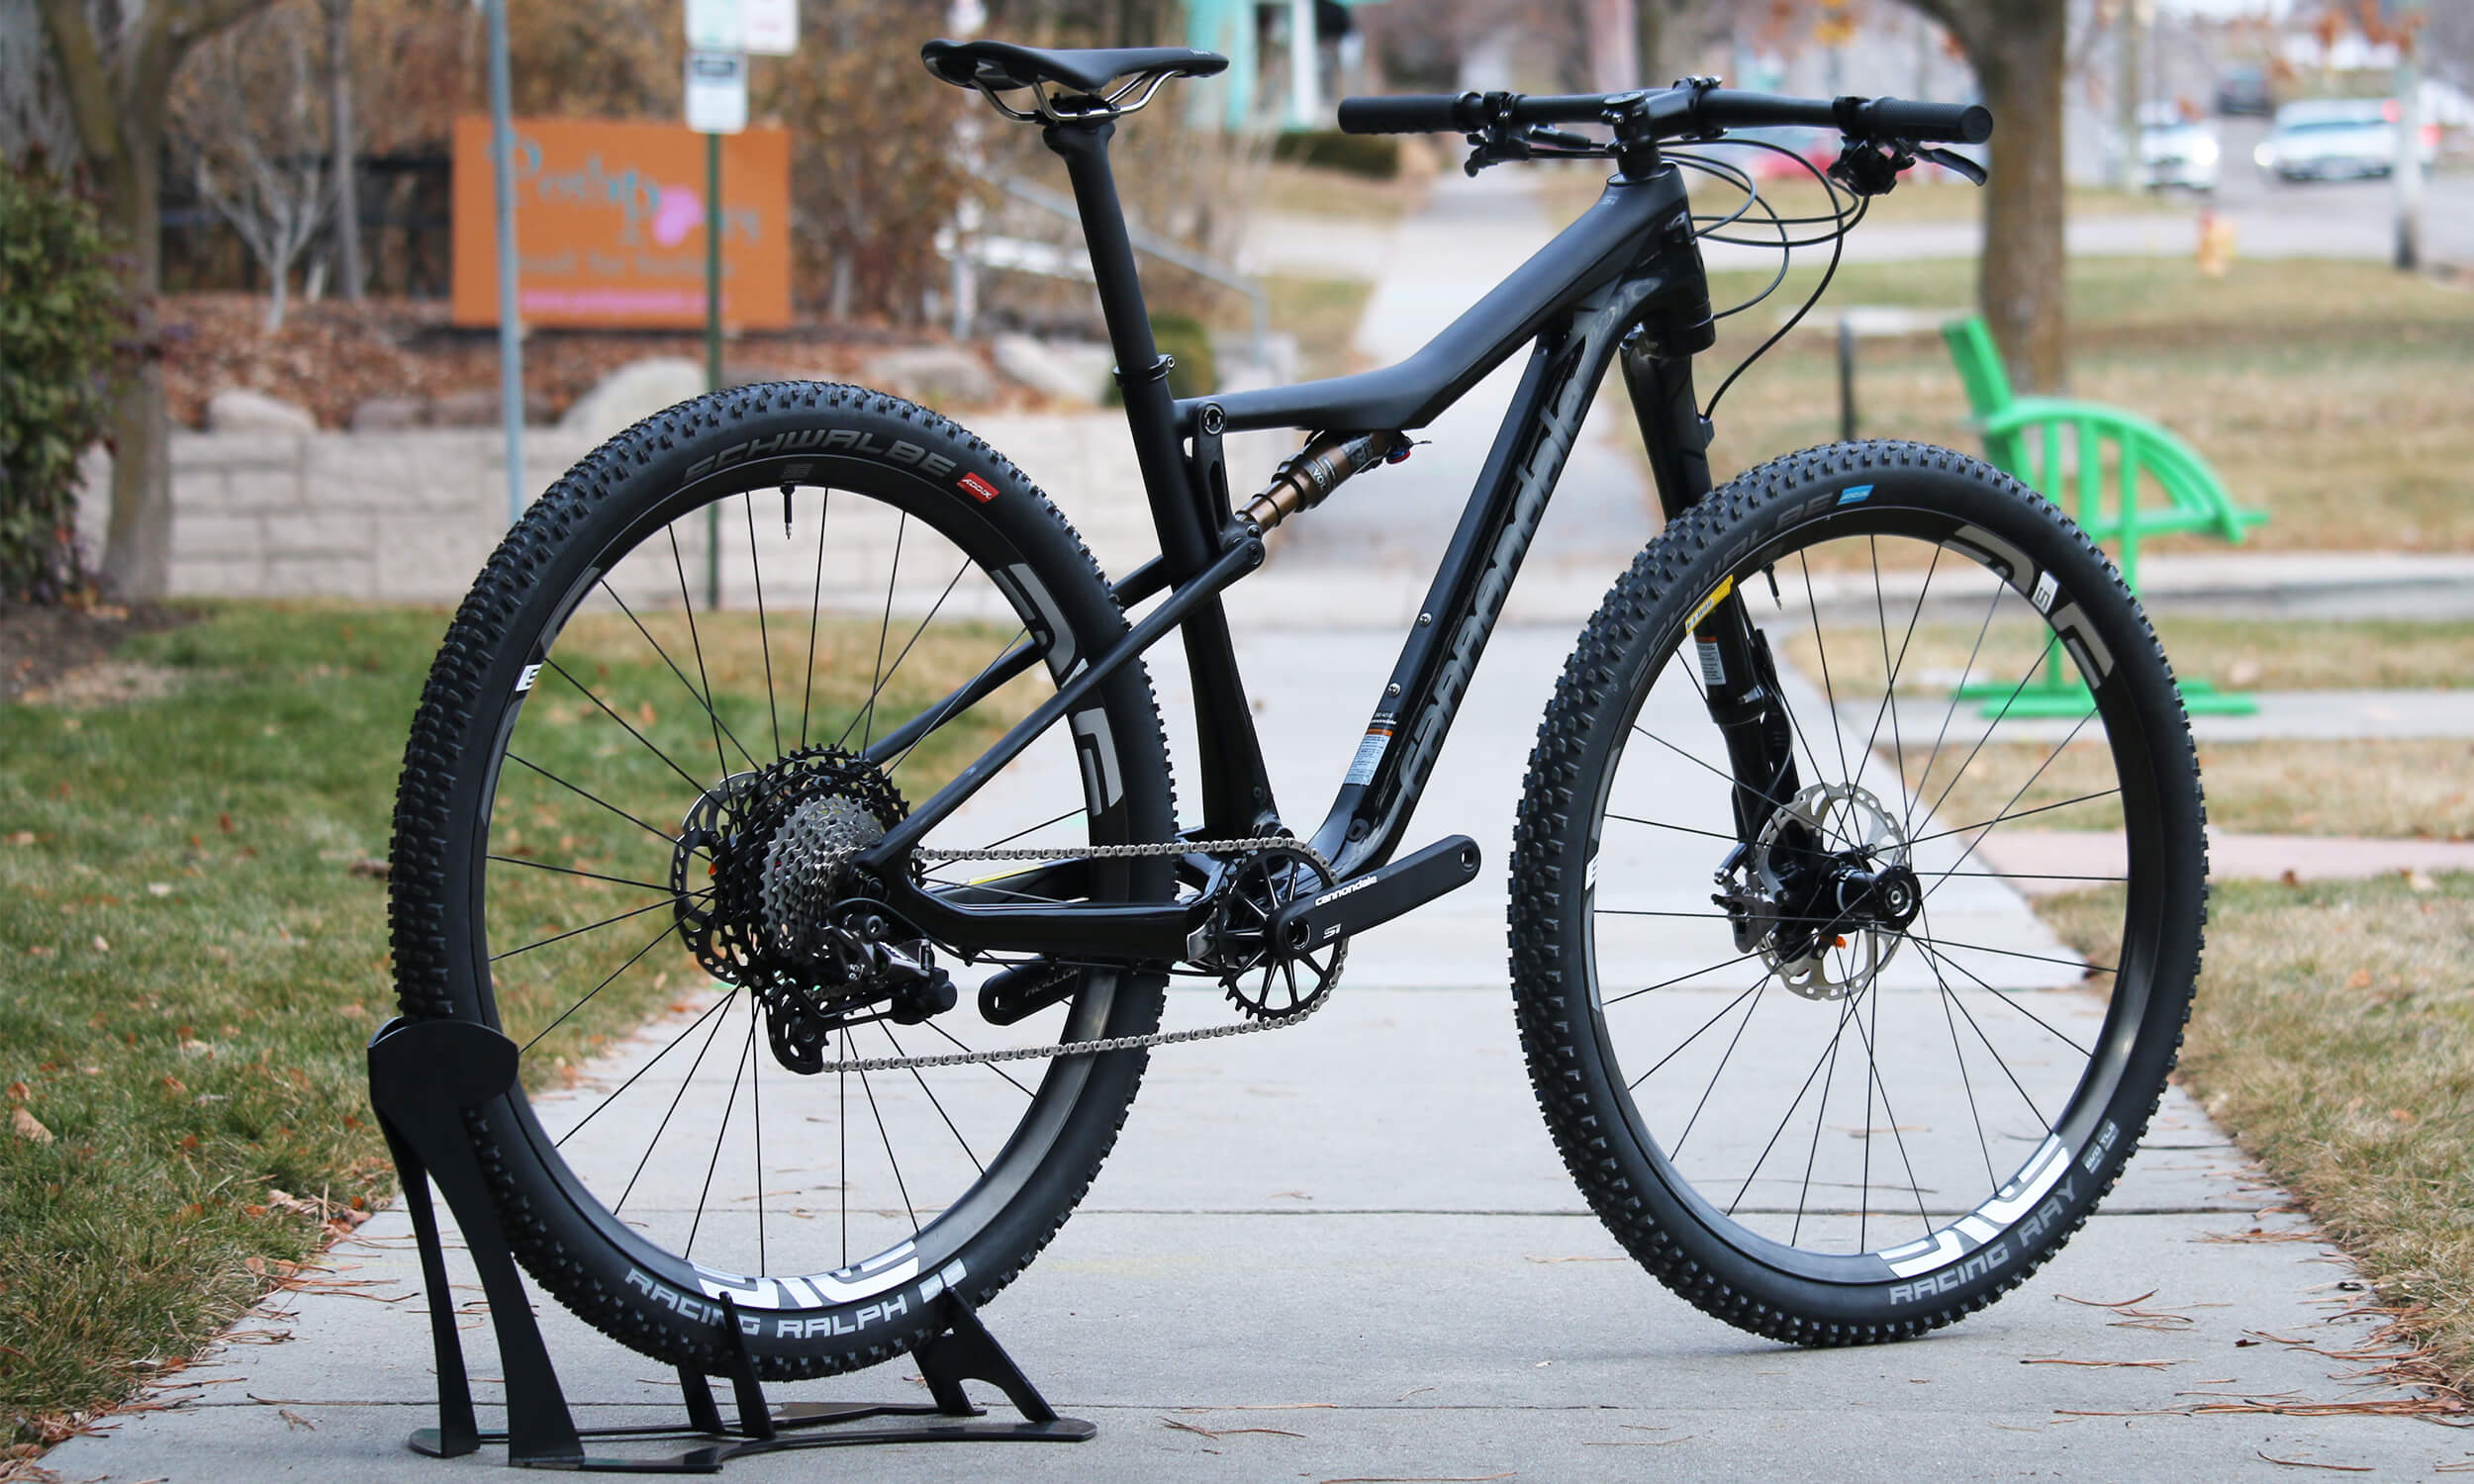 2019 Cannondale Scalpel Si HiMod Carbon XTR Limited Edition Bike - Contender Bicycles